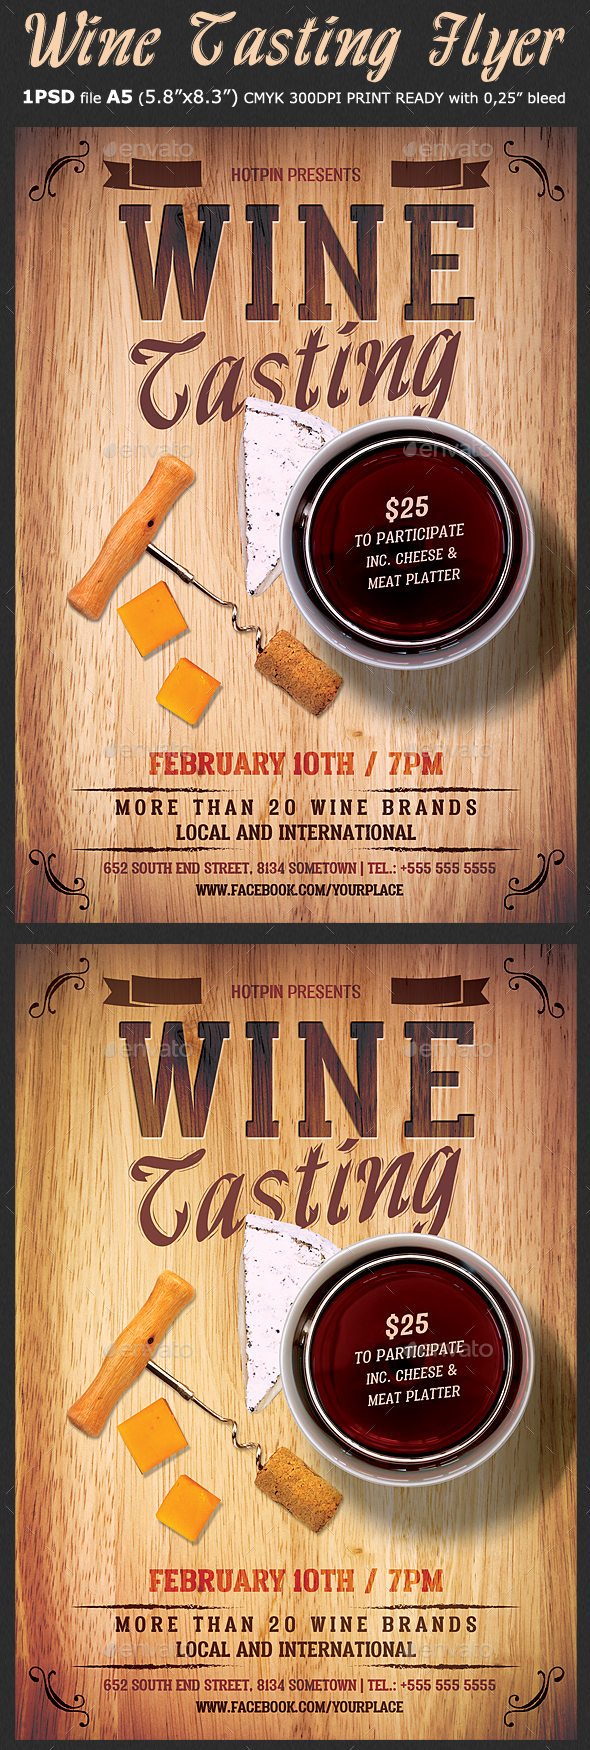 wine tasting flyer template by hotpin graphicriver. Black Bedroom Furniture Sets. Home Design Ideas